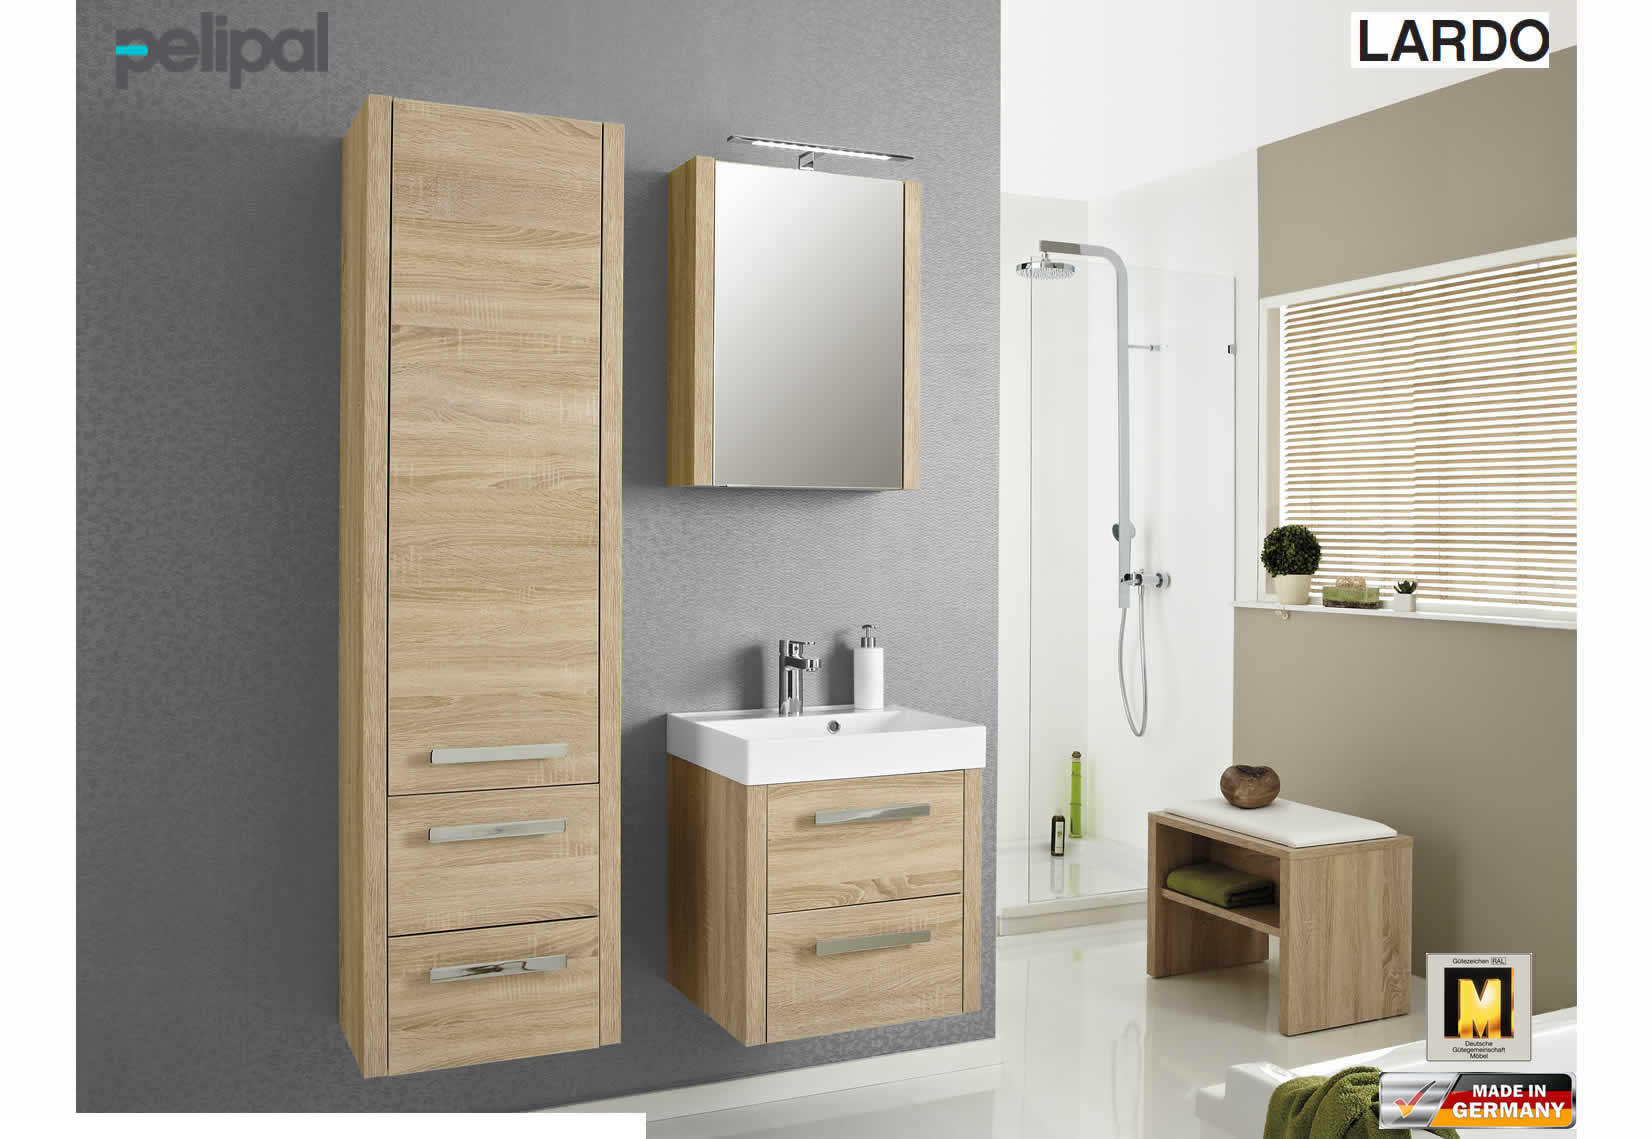 pelipal lardo badm bel set 50 cm impuls home. Black Bedroom Furniture Sets. Home Design Ideas